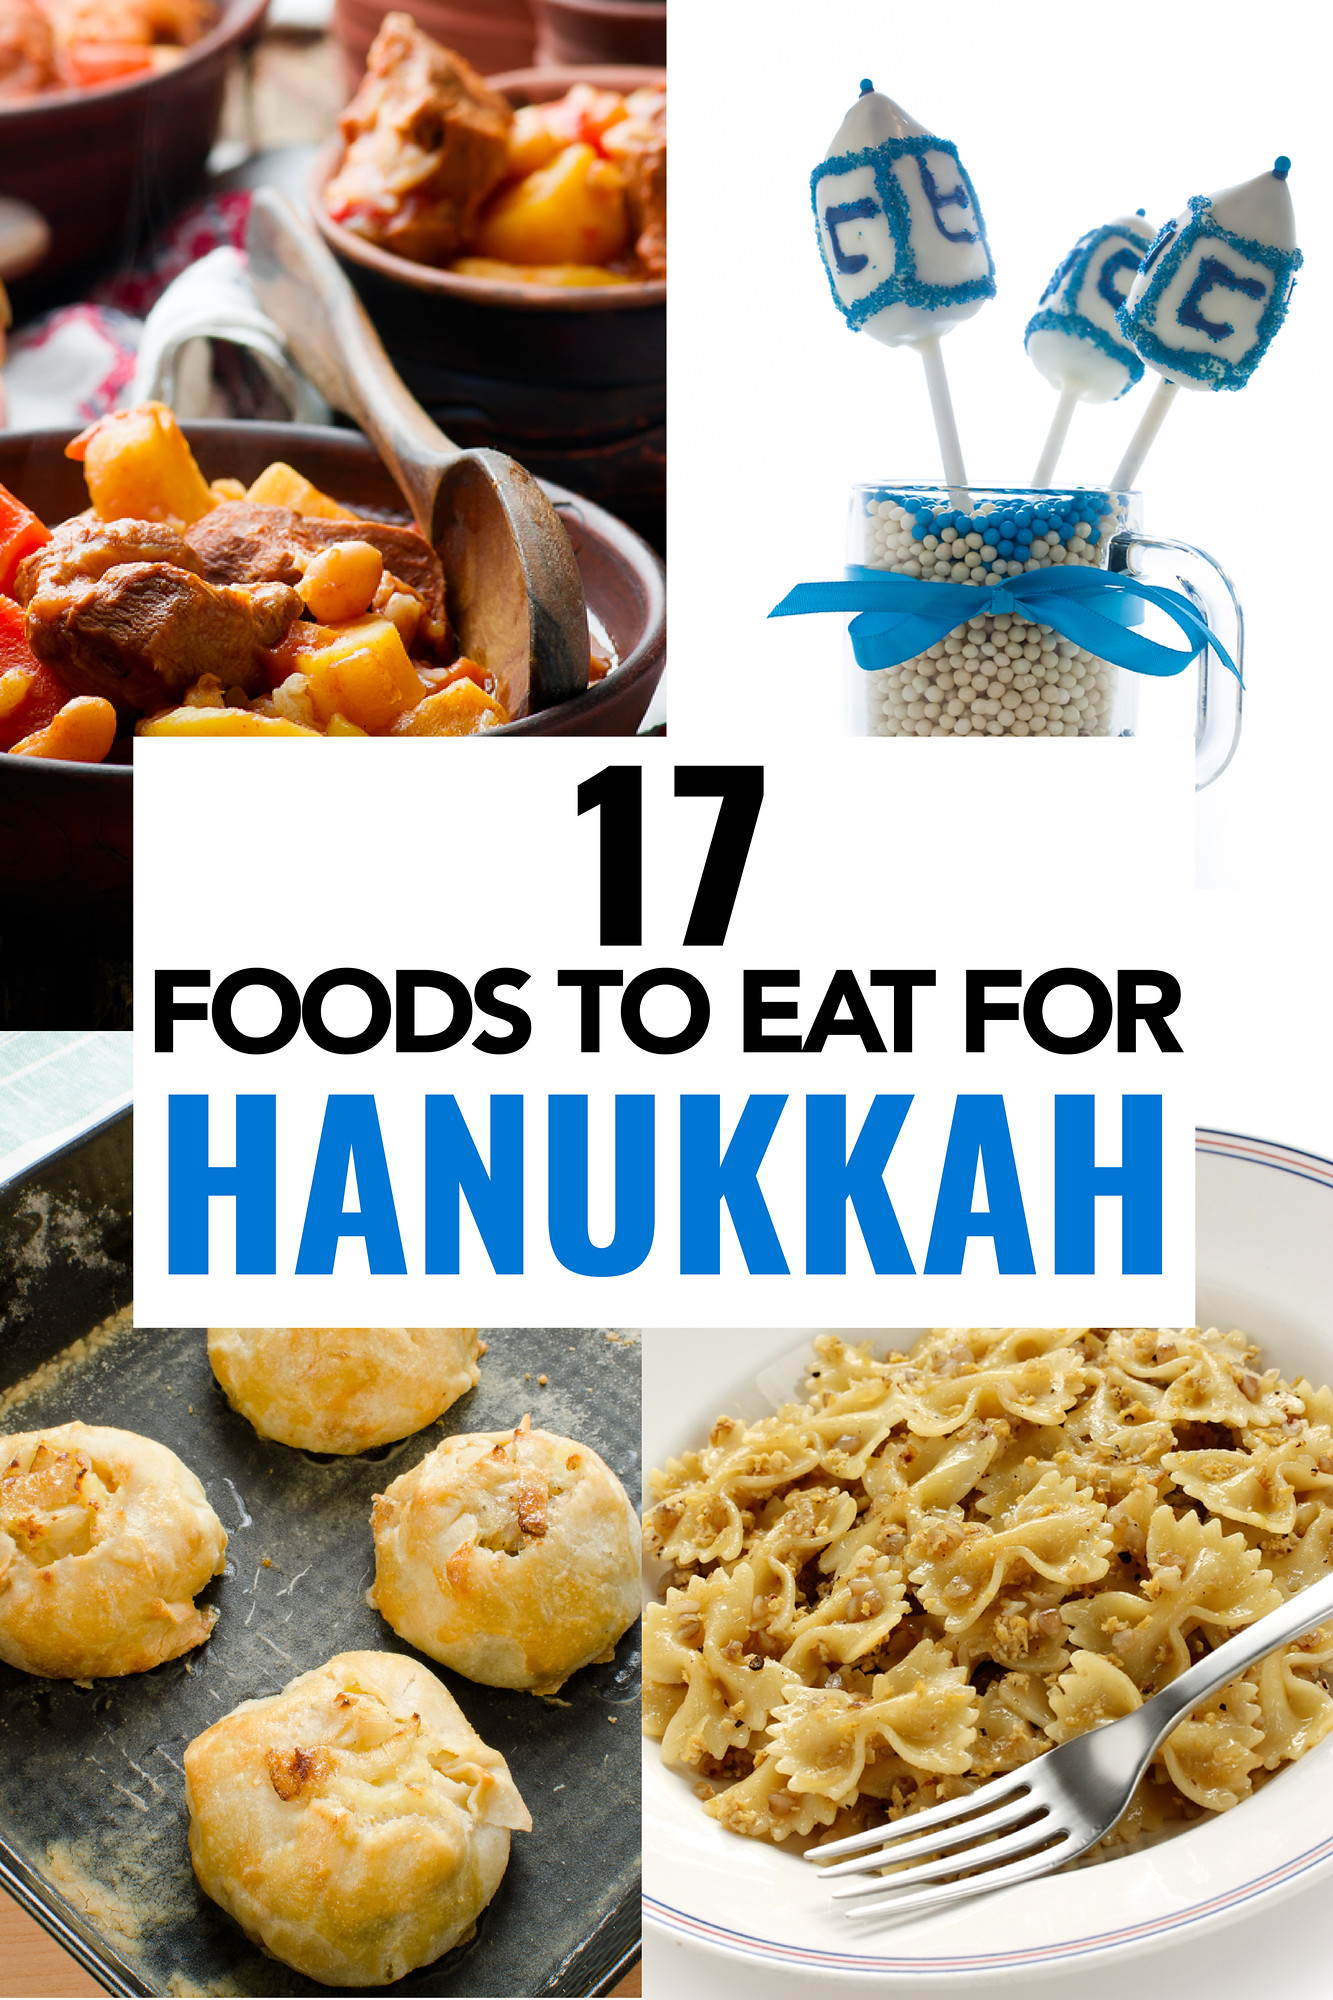 Food for Hanukkah that you need to try, 17 dishes for this delicious festival of lights. #Hanukkah